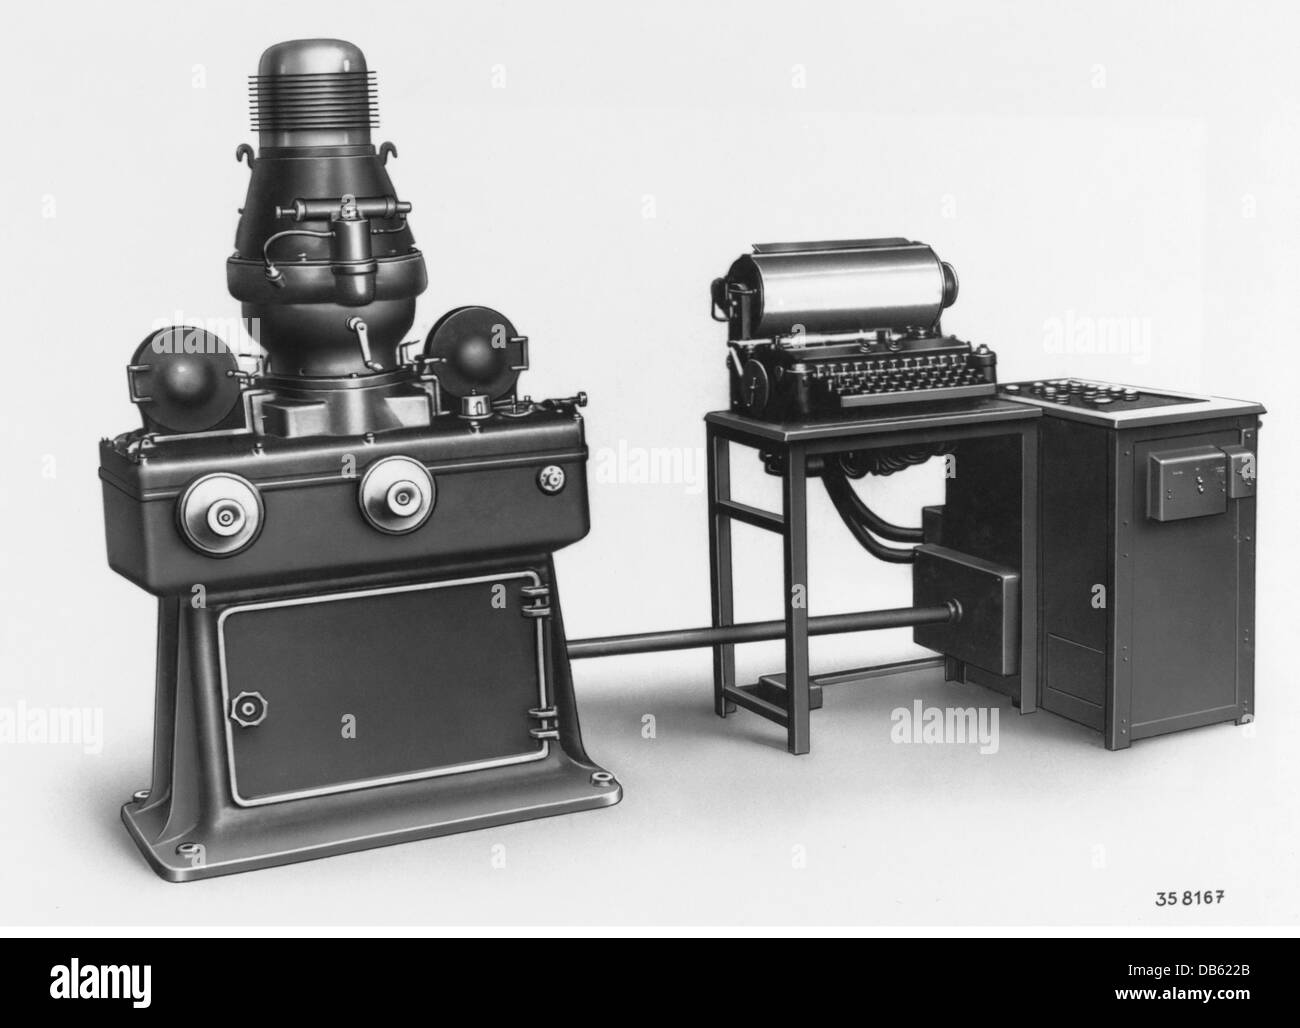 technics, typography, filmsetting machine, invented by Edmund Uher, 1930, Additional-Rights-Clearences-NA - Stock Image